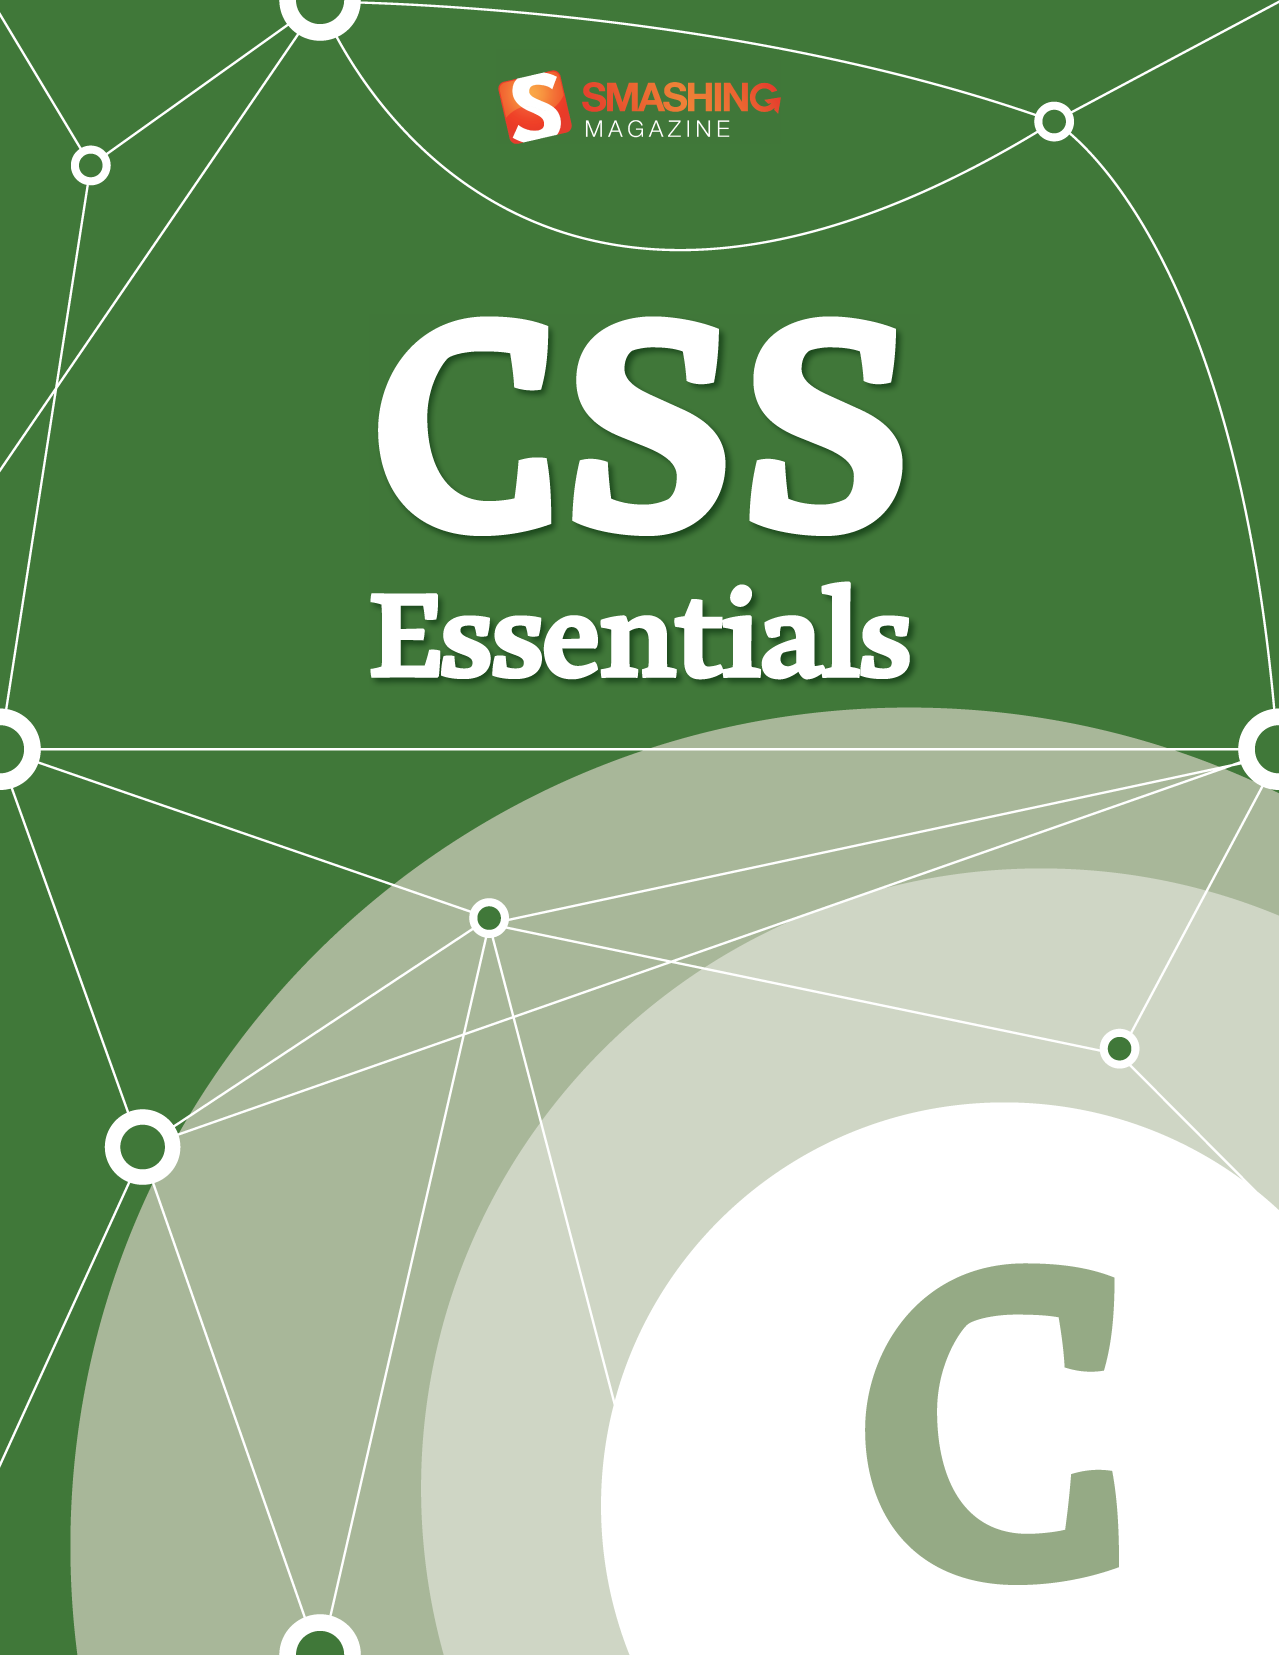 CSS Essentials By: Smashing Magazine